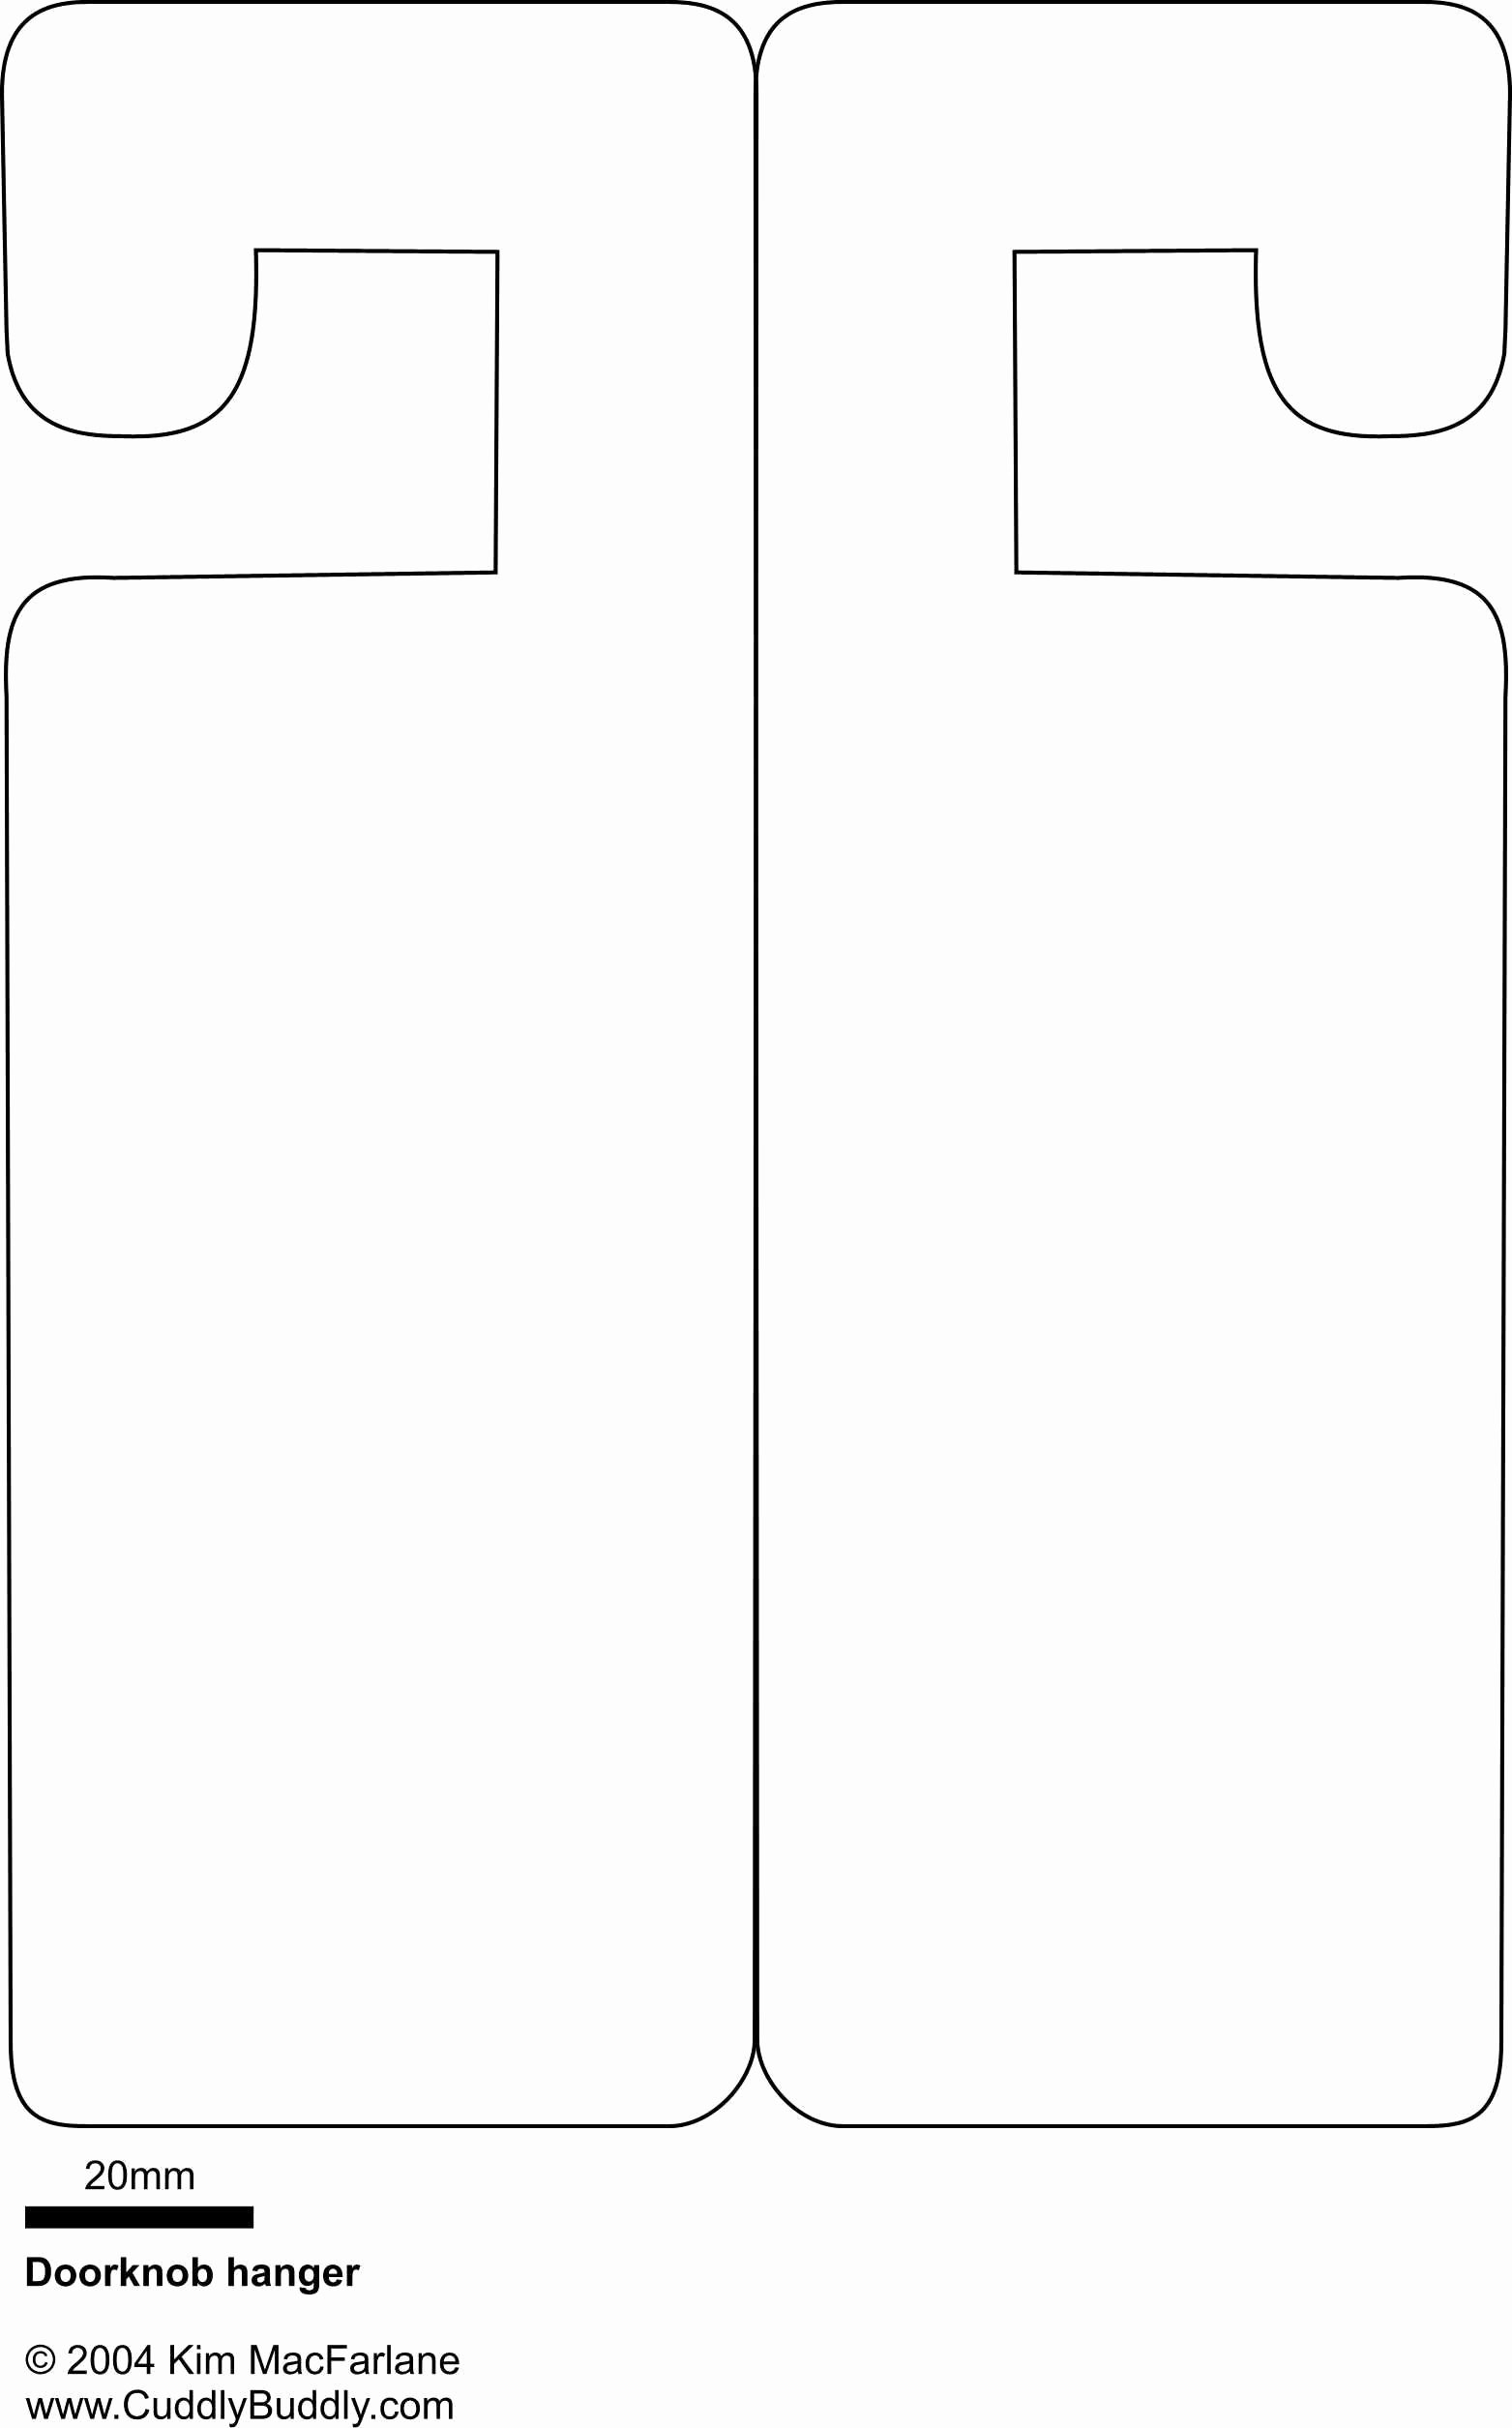 Door Knob Hanger Template Awesome Doorknob Hanger Template something to Occupy the Kids On